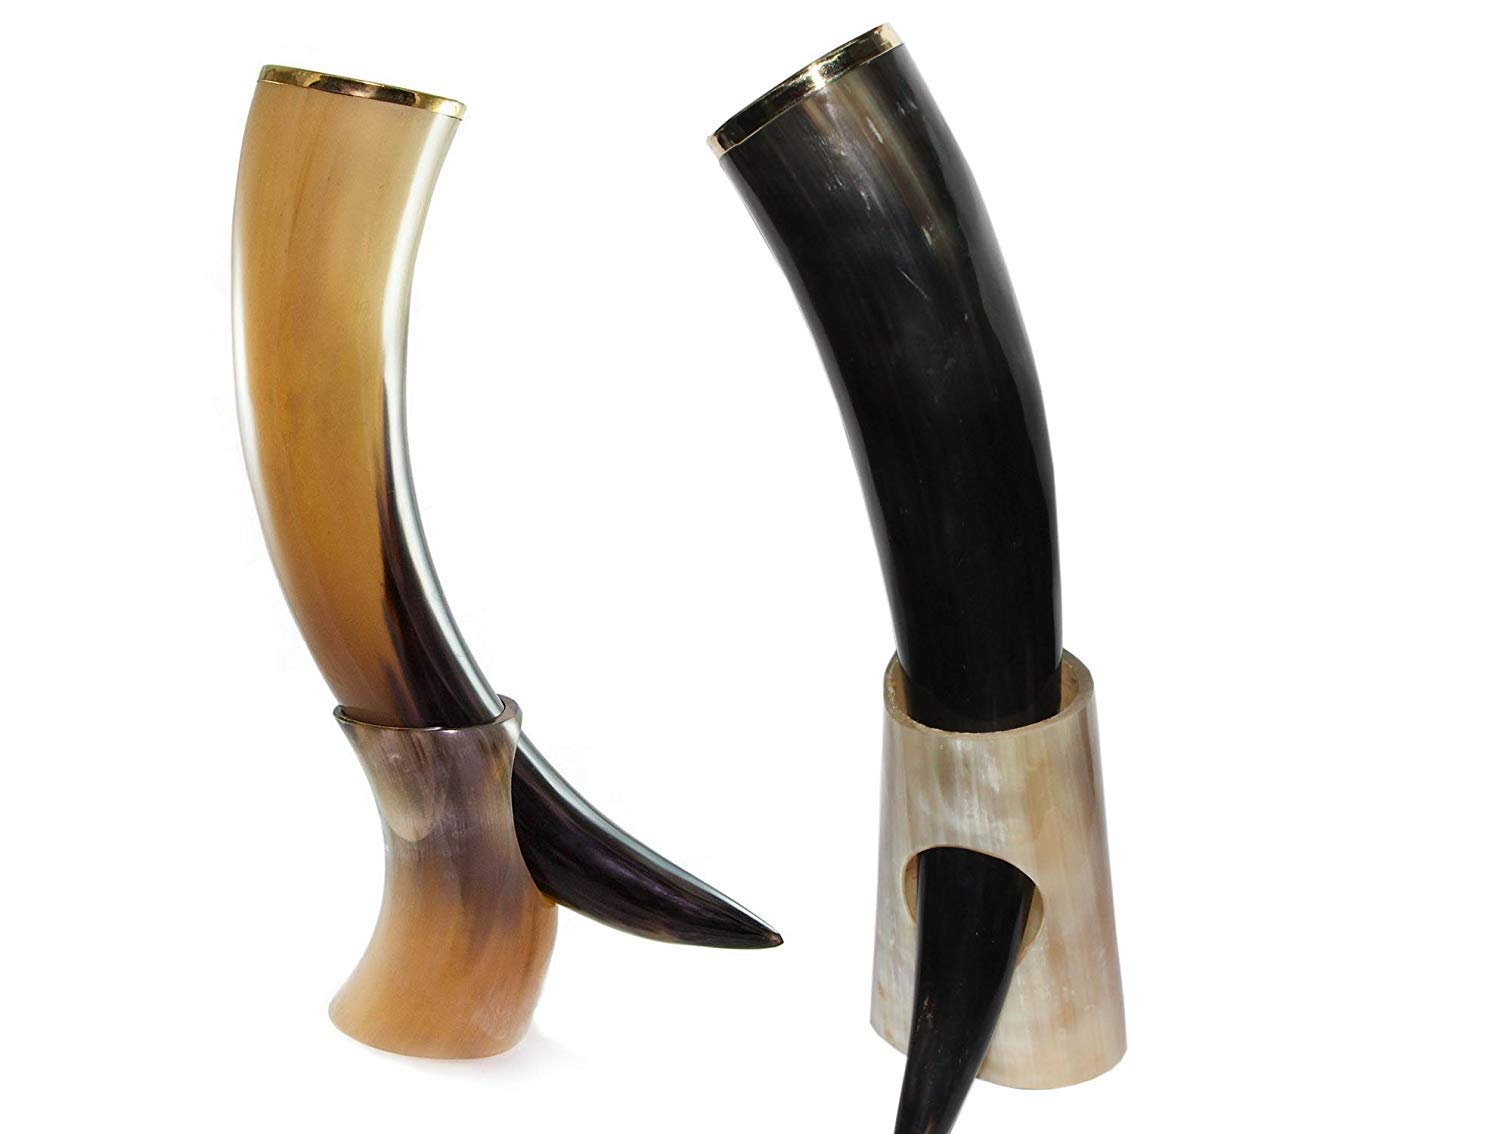 Replicartz Real Viking Genuine Drinking horn Food Safe Cup – No Leaks – Norse Drinking Beer Mug with 20 oz Capacity Best…